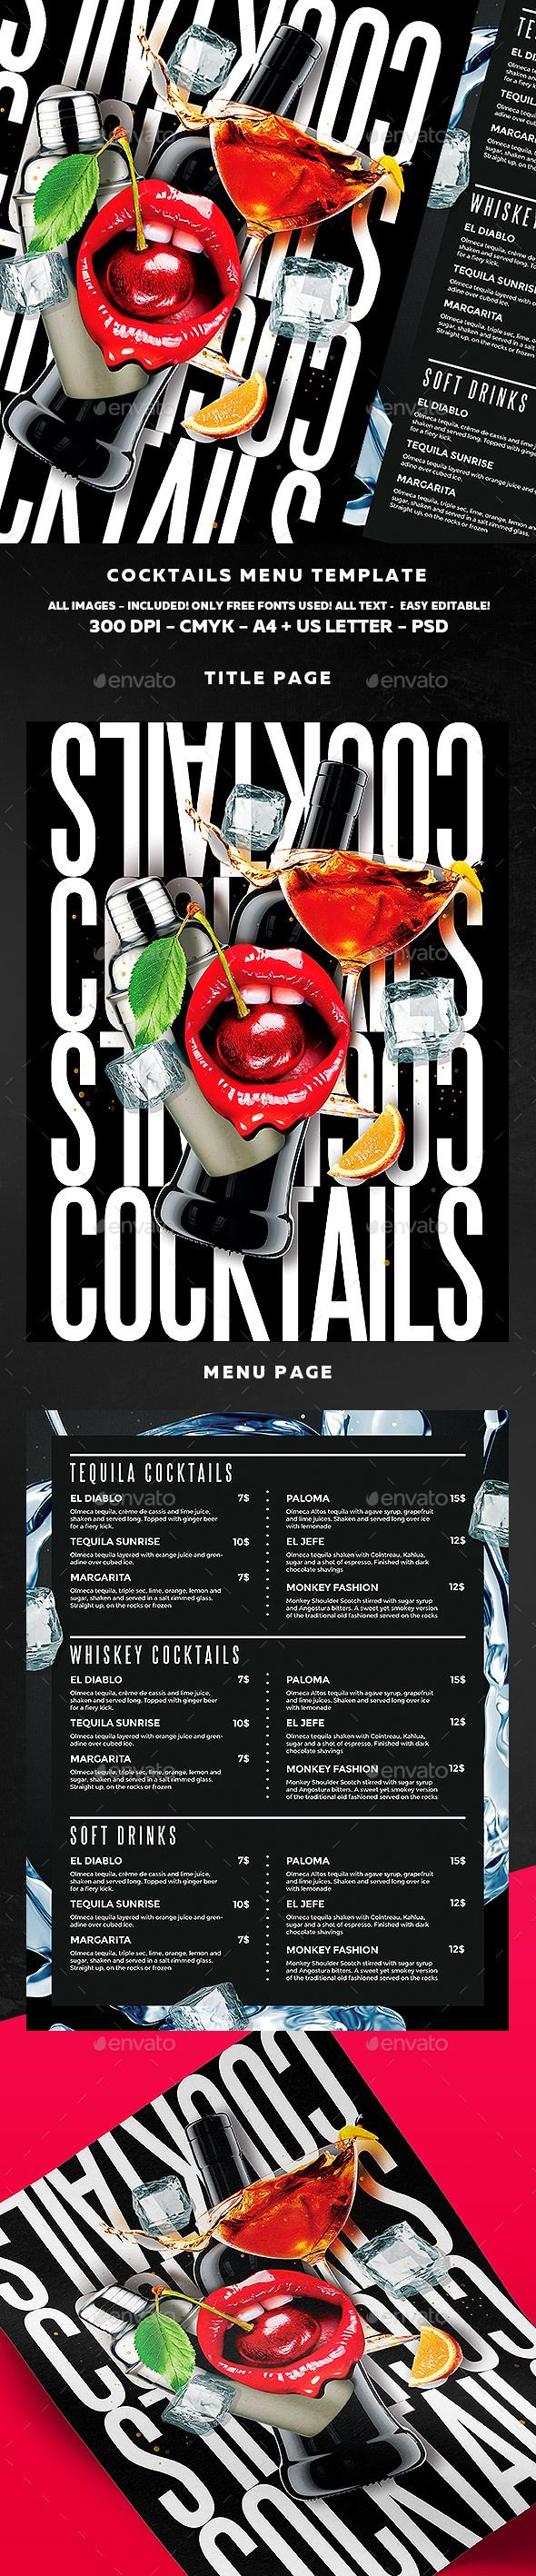 Best 25+ Cocktail menu ideas on Pinterest | Menu design, Menu ...